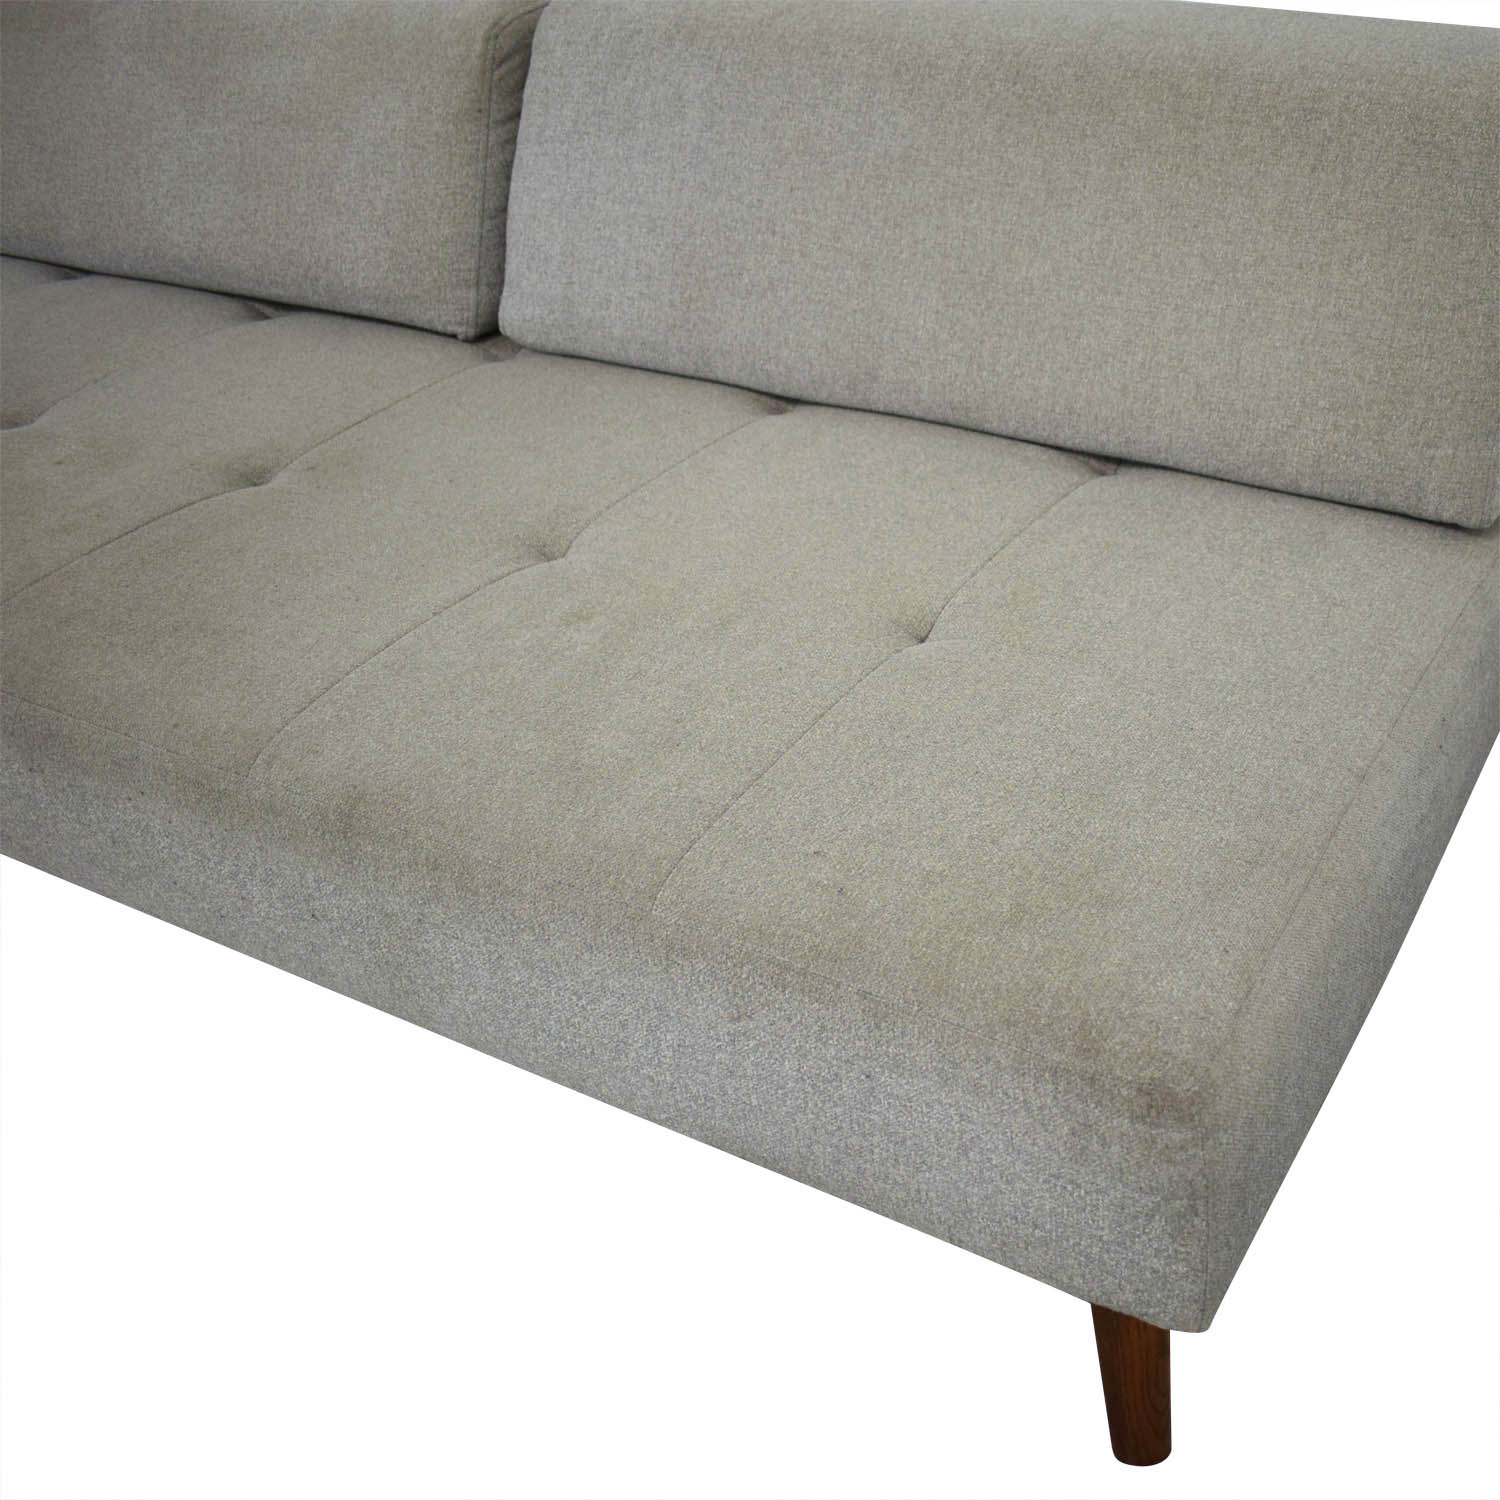 West Elm West Elm Sectional Couch price